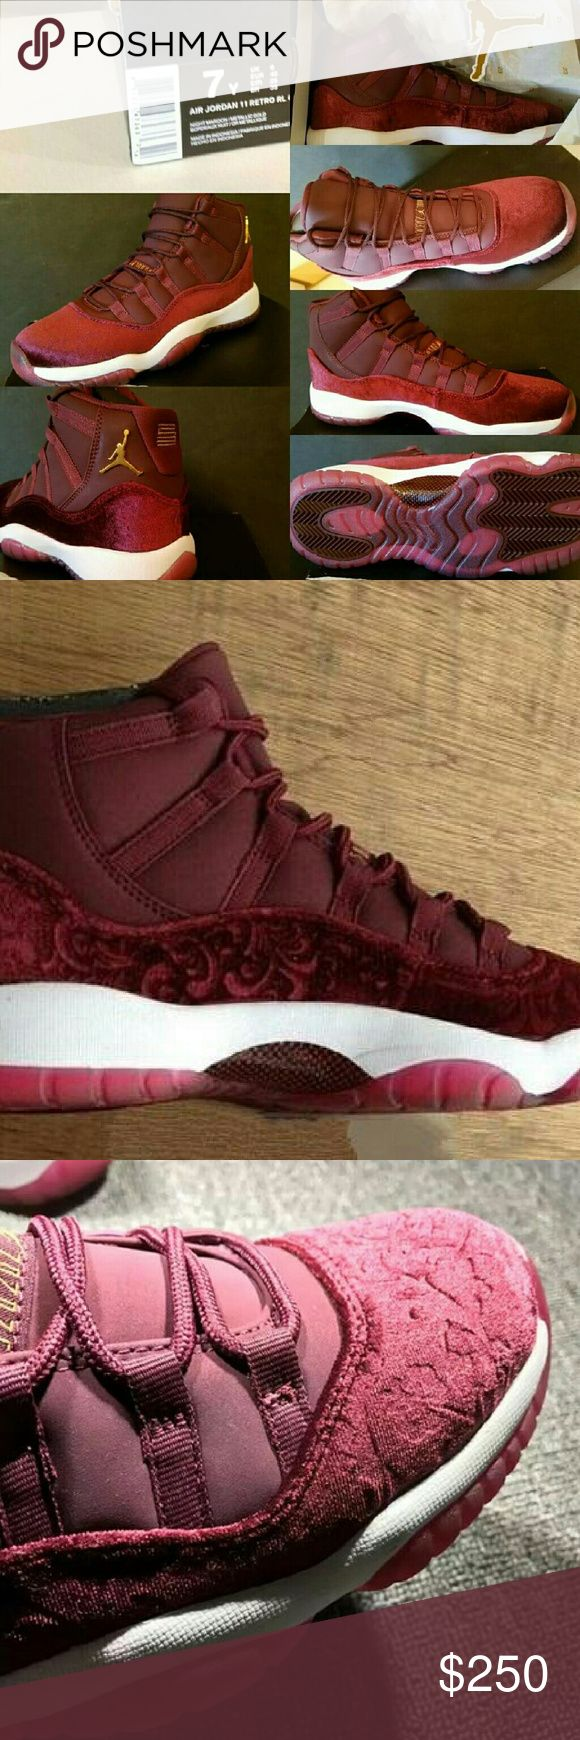 """Jordan XI Retro 11 """"HEIRESS"""" RED VELVET Night Maro I can get any size between  a 4 and 9.5. Jordan Shoes Sneakers"""